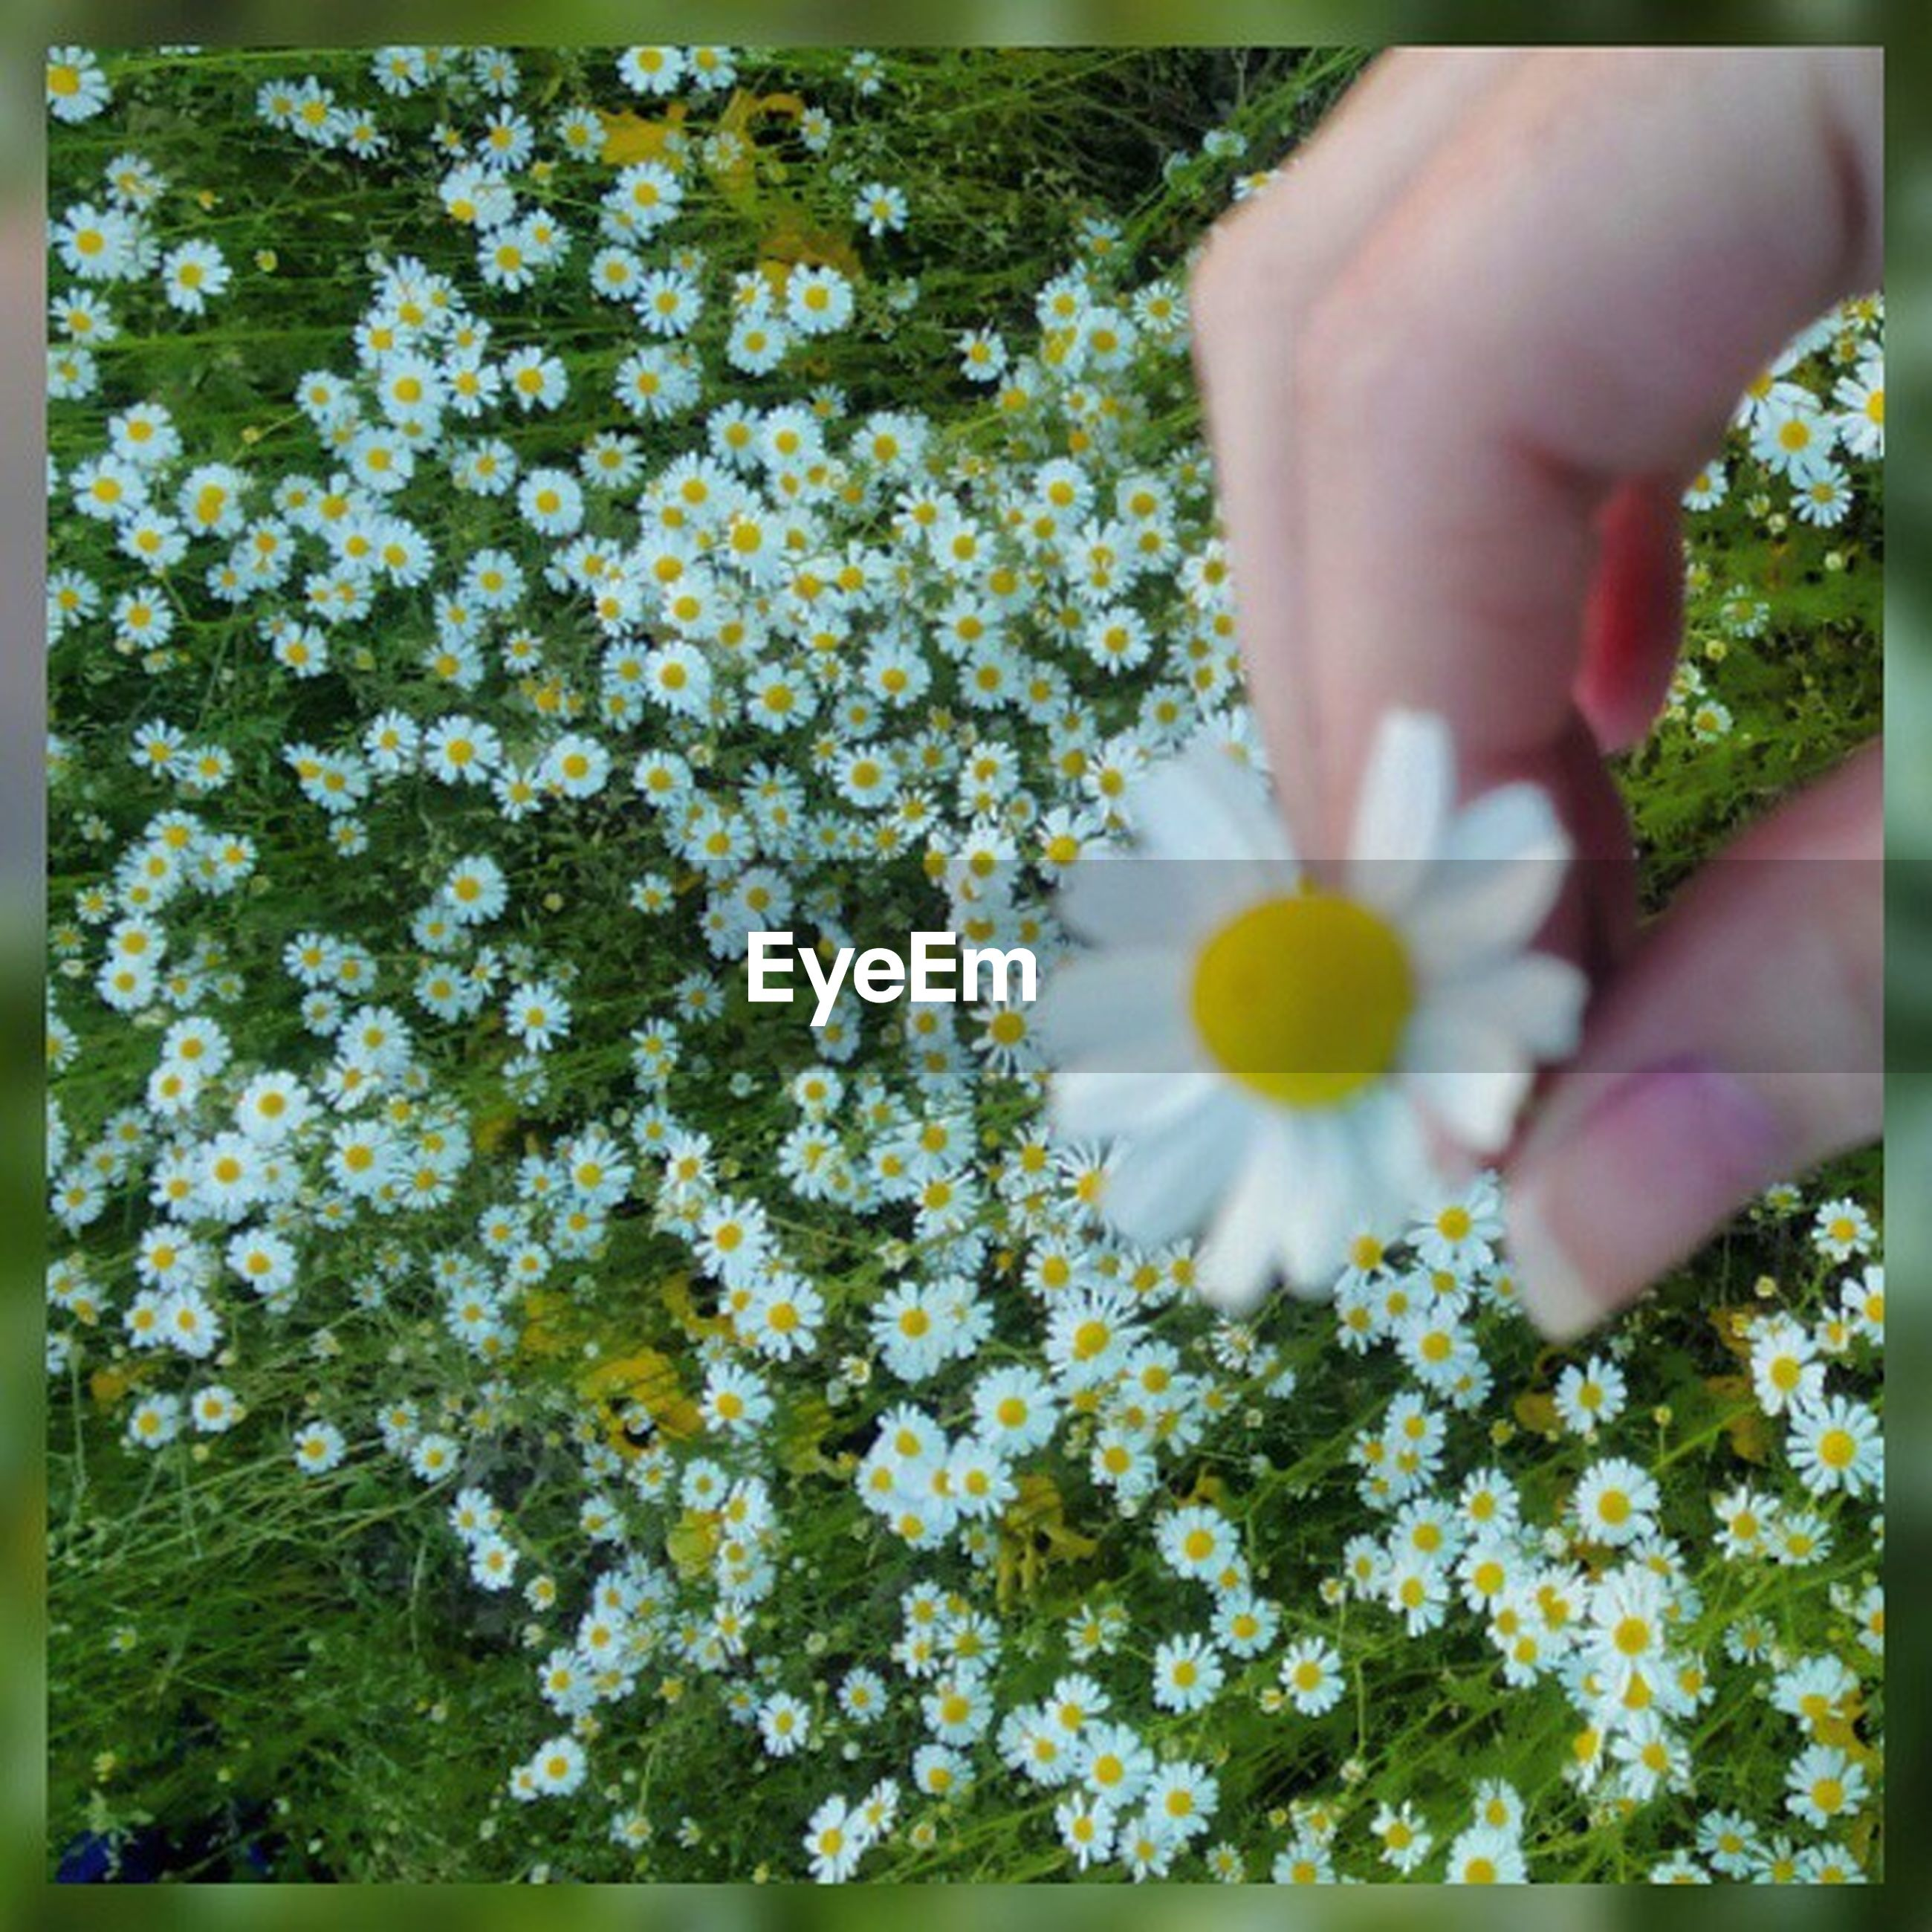 flower, person, freshness, holding, transfer print, fragility, lifestyles, part of, petal, leisure activity, high angle view, auto post production filter, growth, human finger, cropped, flower head